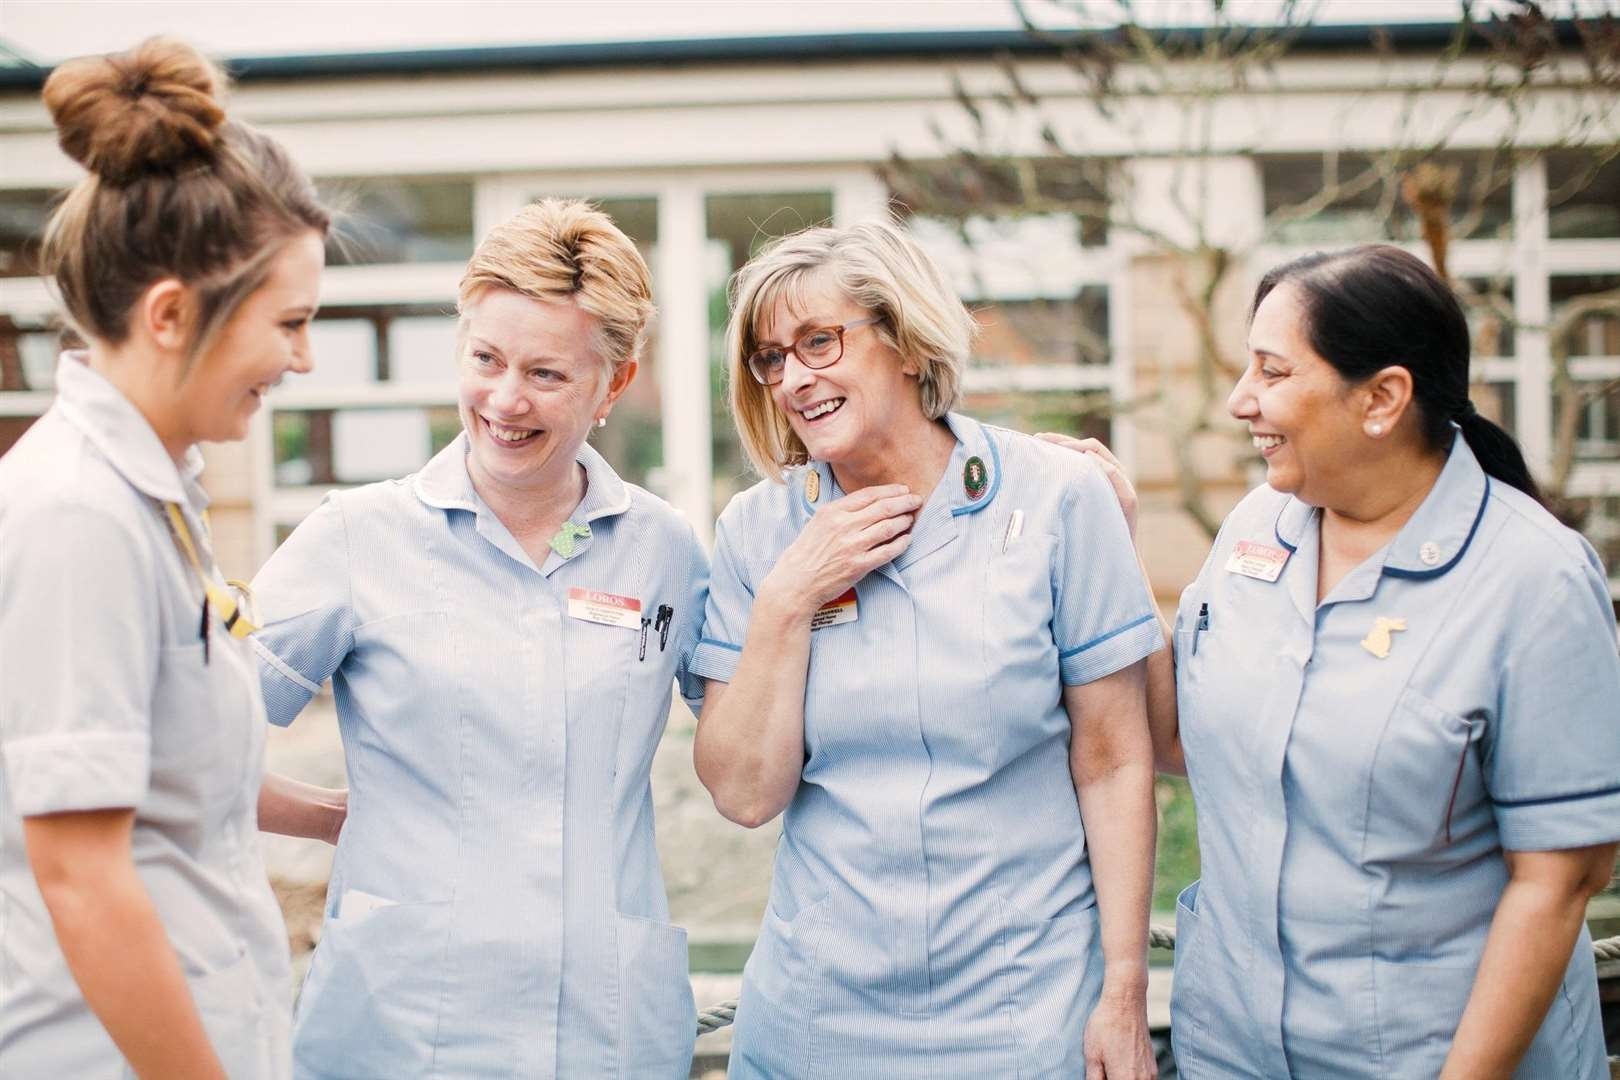 A new recruitment campaign aims to promote Rutland as a leading career destination for health and social care professionals (6638456)